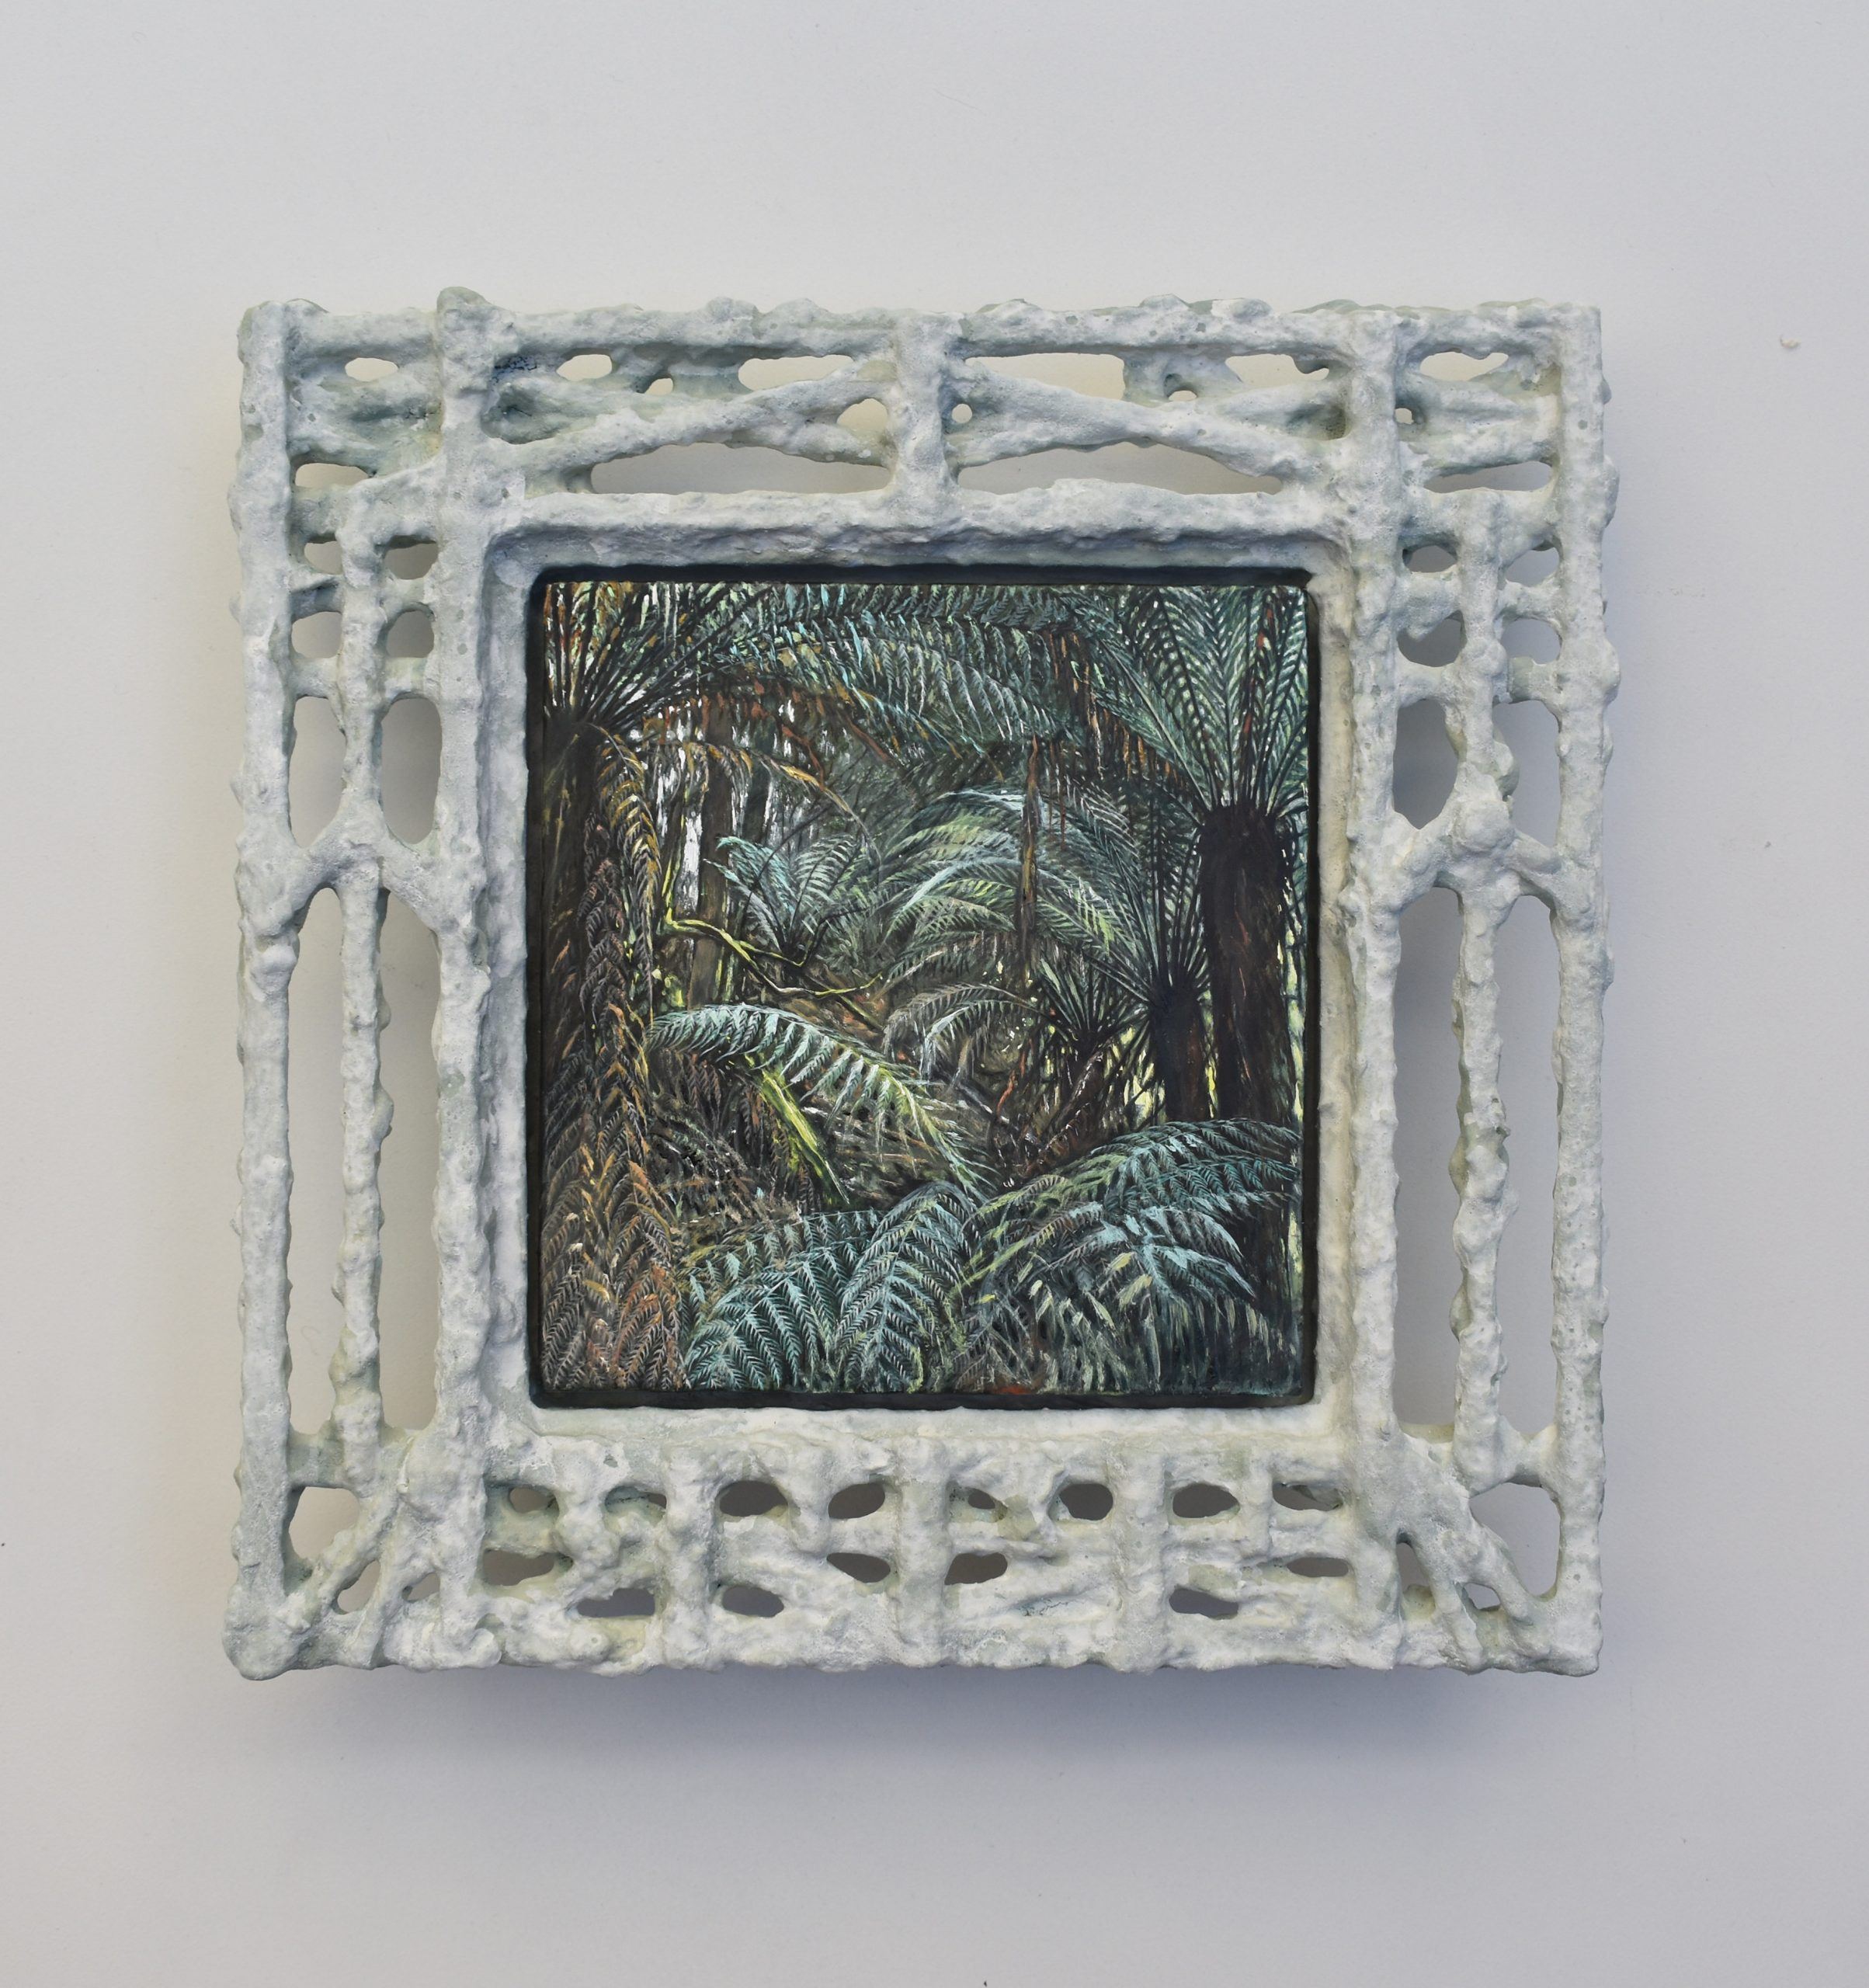 A Delicacy of Ferns_LPatterson_2021_250x250mm